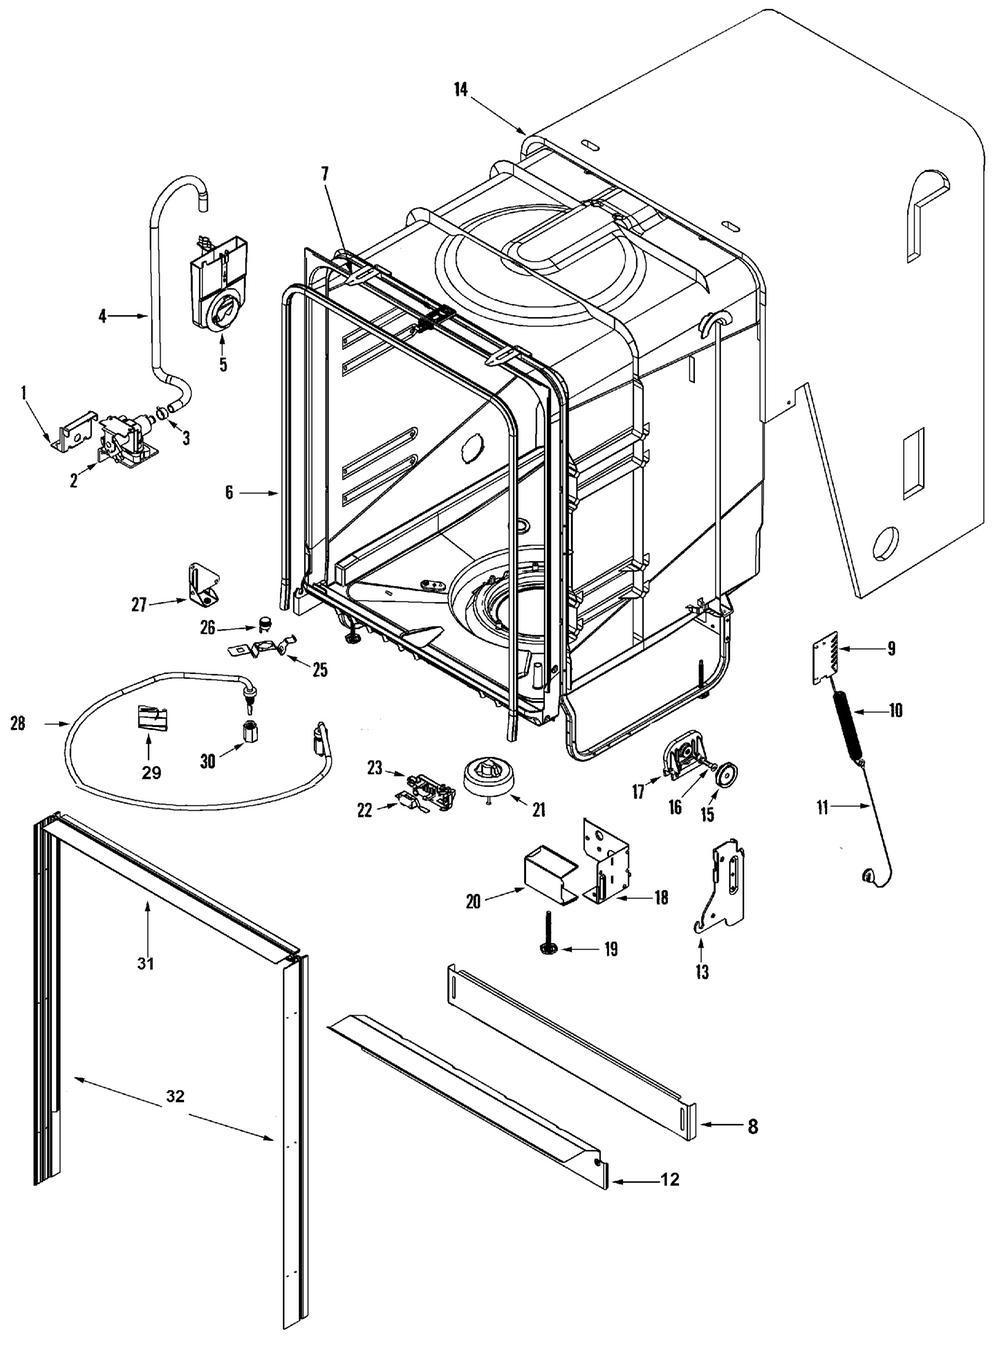 Maytag Maytag Dishwasher Parts | Model Mdb5651Awb | Sears Partsdirect throughout Maytag Quiet Series 300 Parts Diagram